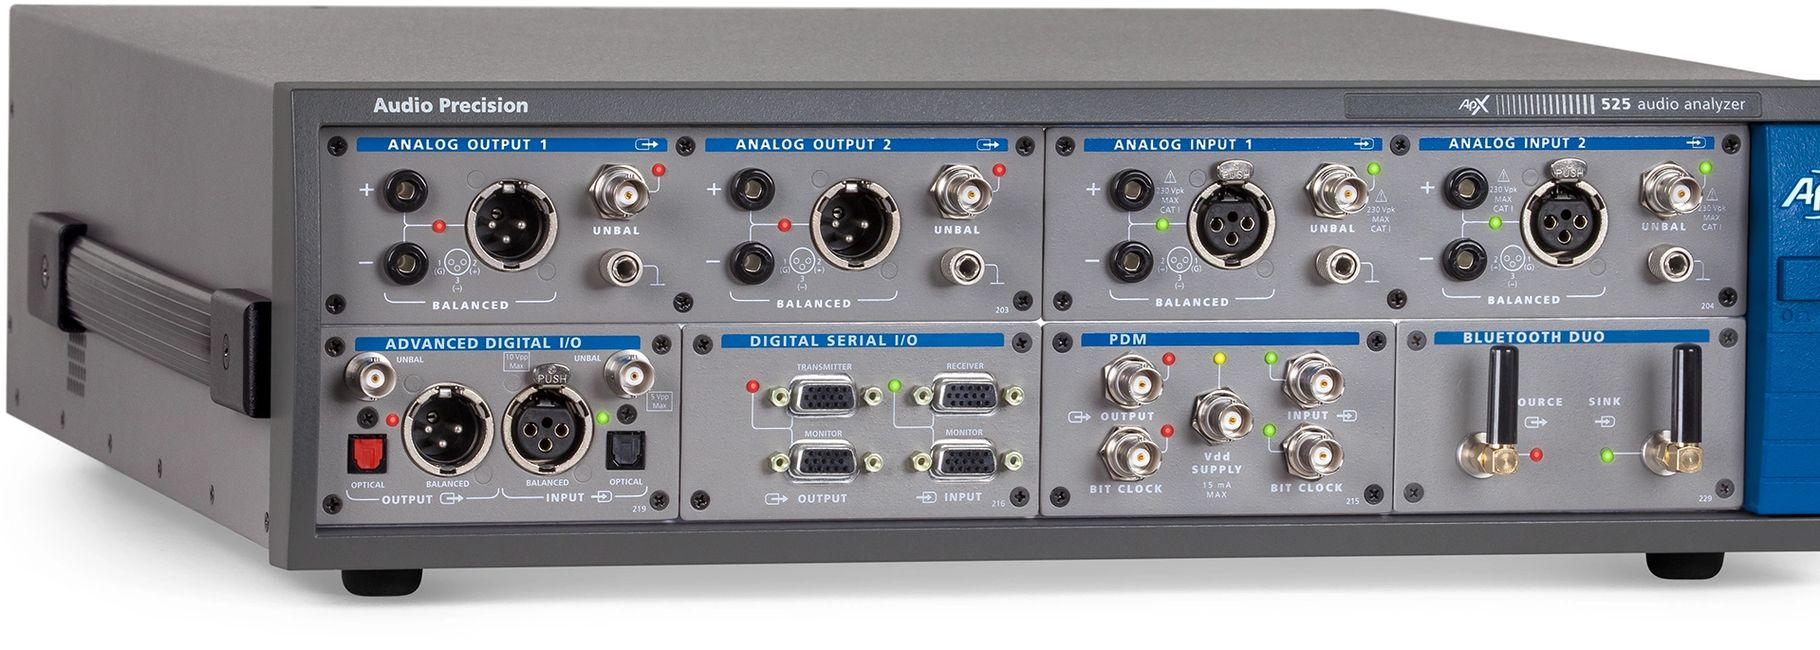 The Audio  Precision ApX 525 is one of many high resolution testing devices we deploy in our lab.